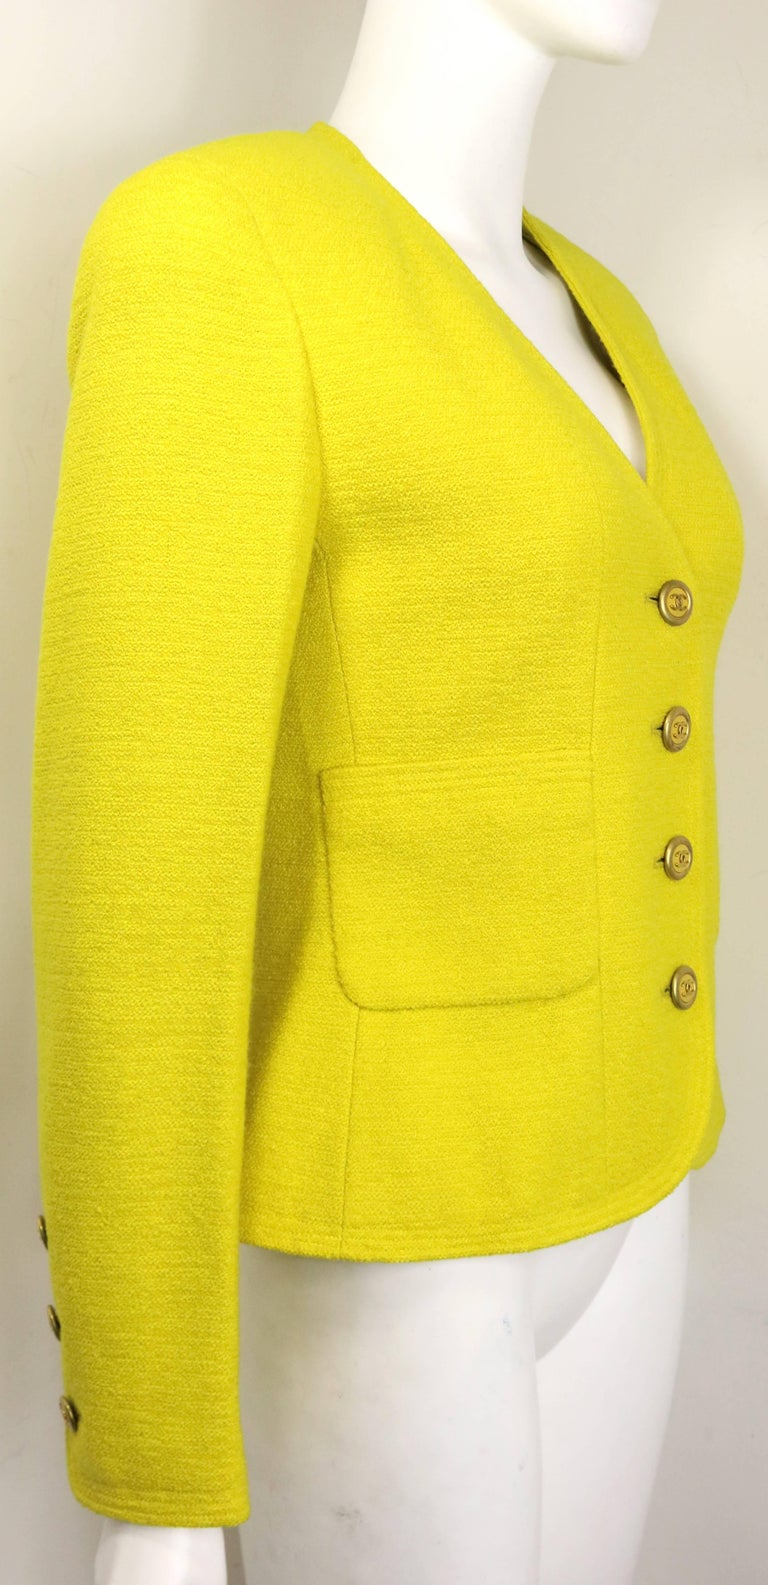 - Vintage Chanel yellow wool jacket from 1994 A/W collection.   - V neck with no collar.   - Four front gold toned